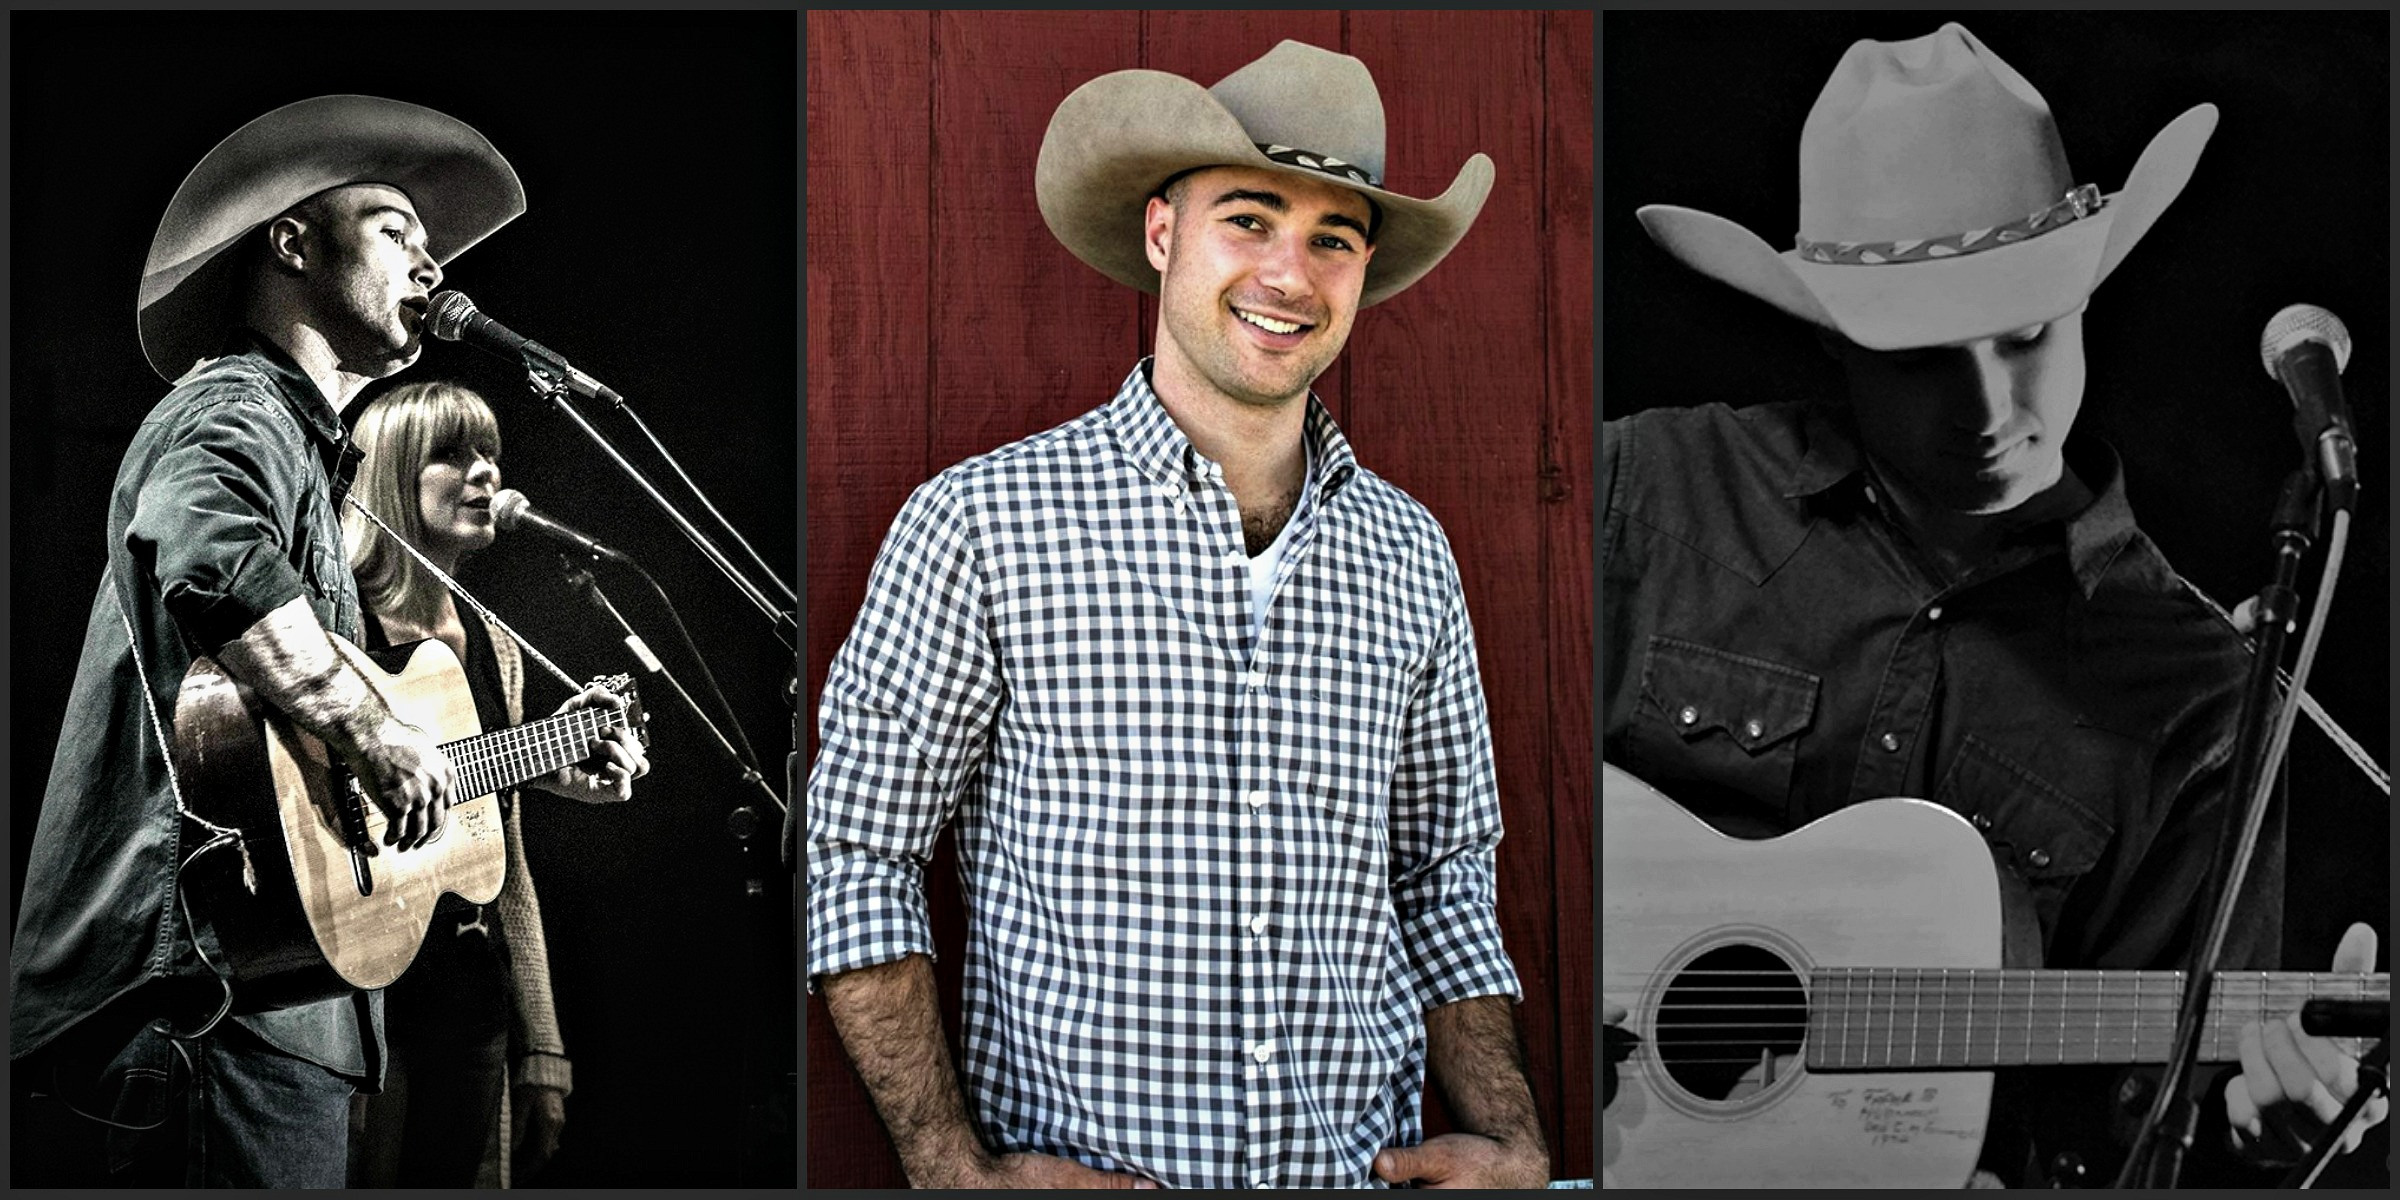 Durango native Tyller Gummersall is scheduled to take the W2565 Stage Friday, April 29th, coming off the heels of opening for Cole Swindell. Photos courtesy of ©JennyGummersall